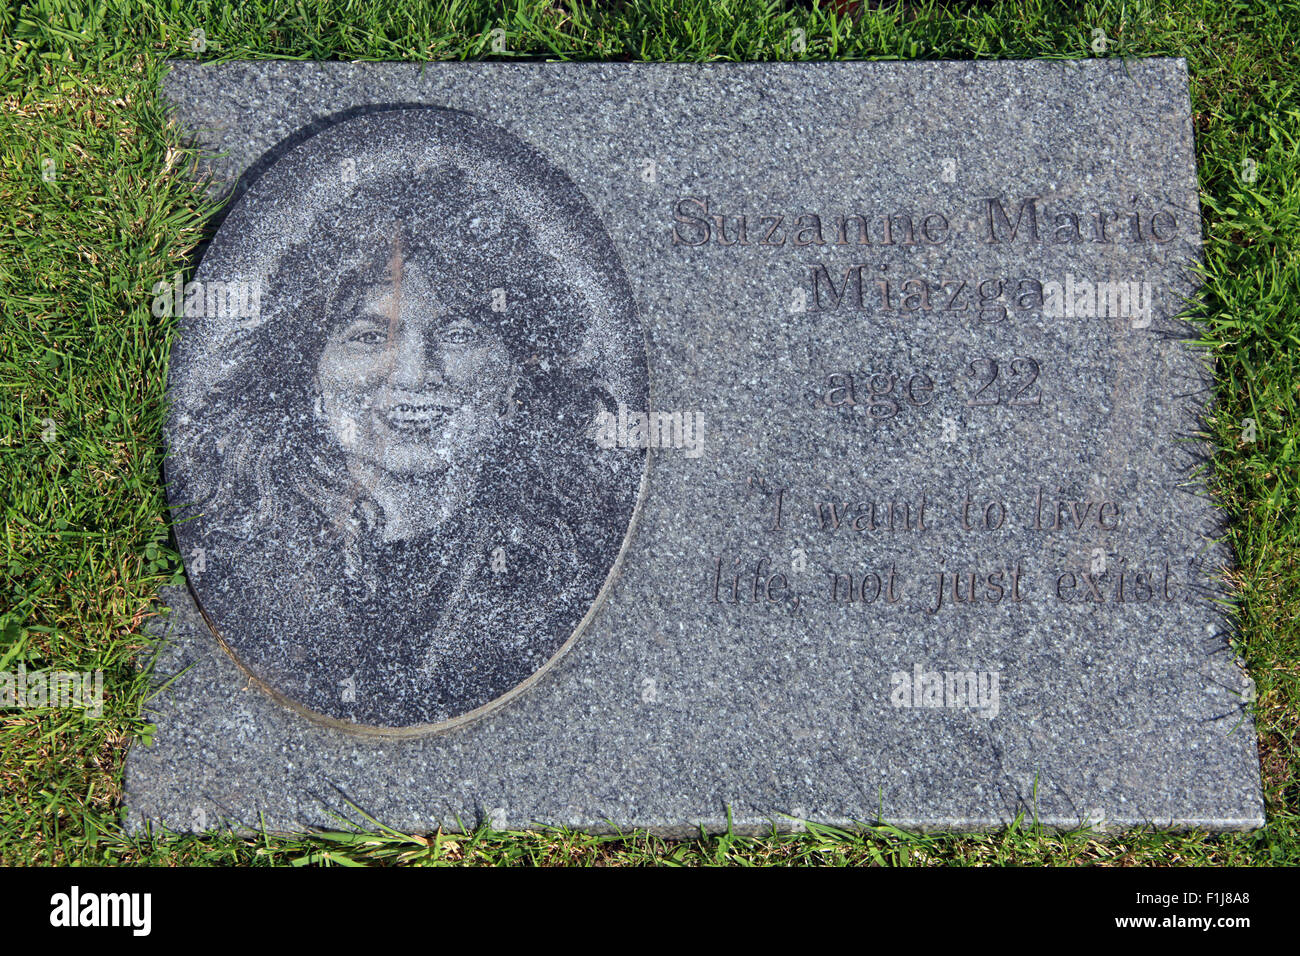 uzanne Maria Miazga Scotland,Lodge,Visitors,Centre,DLVC,Trust,Lockerbie,Memorial,Remembrance,Scotland,Victims,Pan,Am,PanAm,flight,103,bomb,bombing,terrorist,December,1988,attack,crash,dead,site,21/12/1988,270,victims,Scottish,Town,conspiracy,blast,Tundergarth,Room,garden,of,Dryfesdale,New York,GoTonySmith,Lodge,Visitors,Centre,DLVC,Trust,Lockerbie,Memorial,Scotland,Victims,Pan,Am,PanAm,flight,103,bomb,bombing,terrorist,December,1988,attack,crash,dead,site,21/12/1988,270,victims,Scottish,Town,conspiracy,blast,Tundergarth,Room,garden,of,Dryfesdale,Cemetery,news,Cultural,understanding,remembering,innocent,transatlantic,Frankfurt,Detroit,Libyan,Libya,Colonel Muammar Gaddafi,civil,case,compensation,terrorism,PA103,30,30years,years,Syracuse,University,SU,family,collections,Story,Archive,Archives,40,35,Timeline,saga,disaster,air,Scholars,program,programs,remembrance,Clipper Maid of the Seas,N739PA,Boeing,727,plane,aircraft,Scotland,UK,United Kingdom,GB,Great Britain,resting,place,Buy Pictures of,Buy Images Of,New York,al megrahi,30 Years